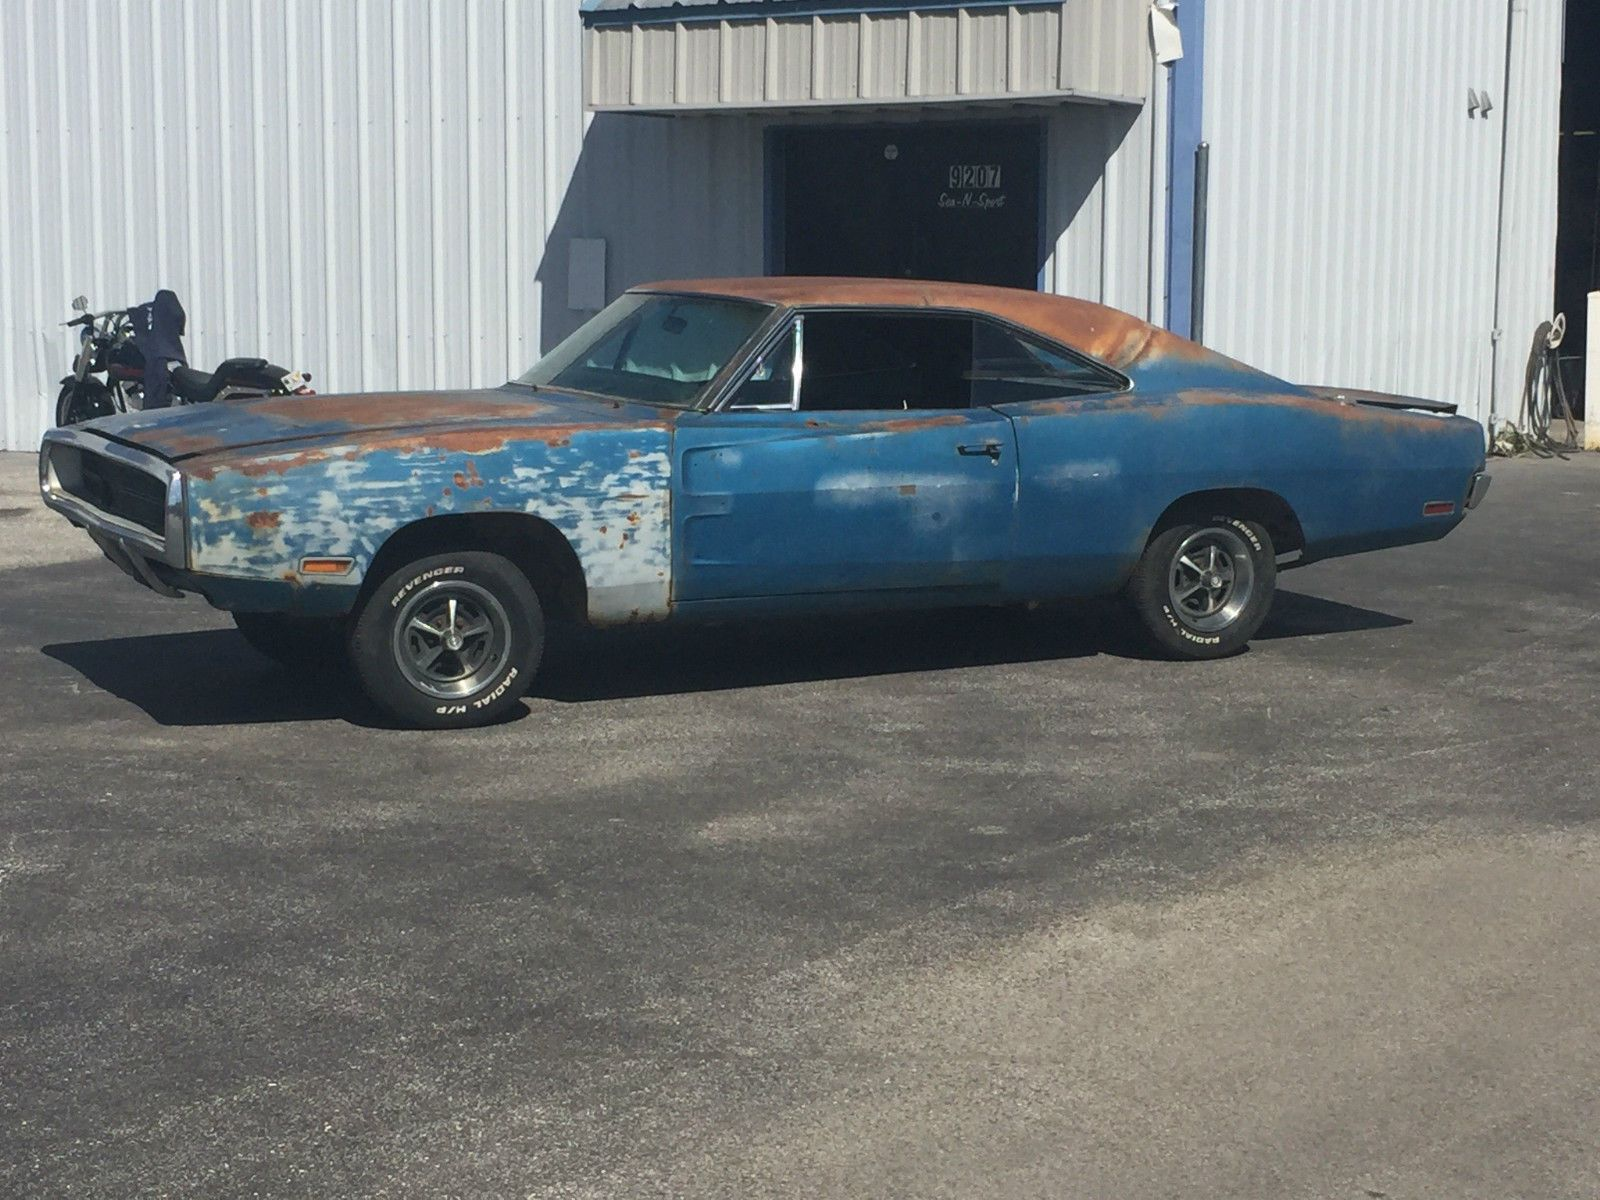 1970 Dodge Charger Rt Project Car Overall Solid Car Dodge